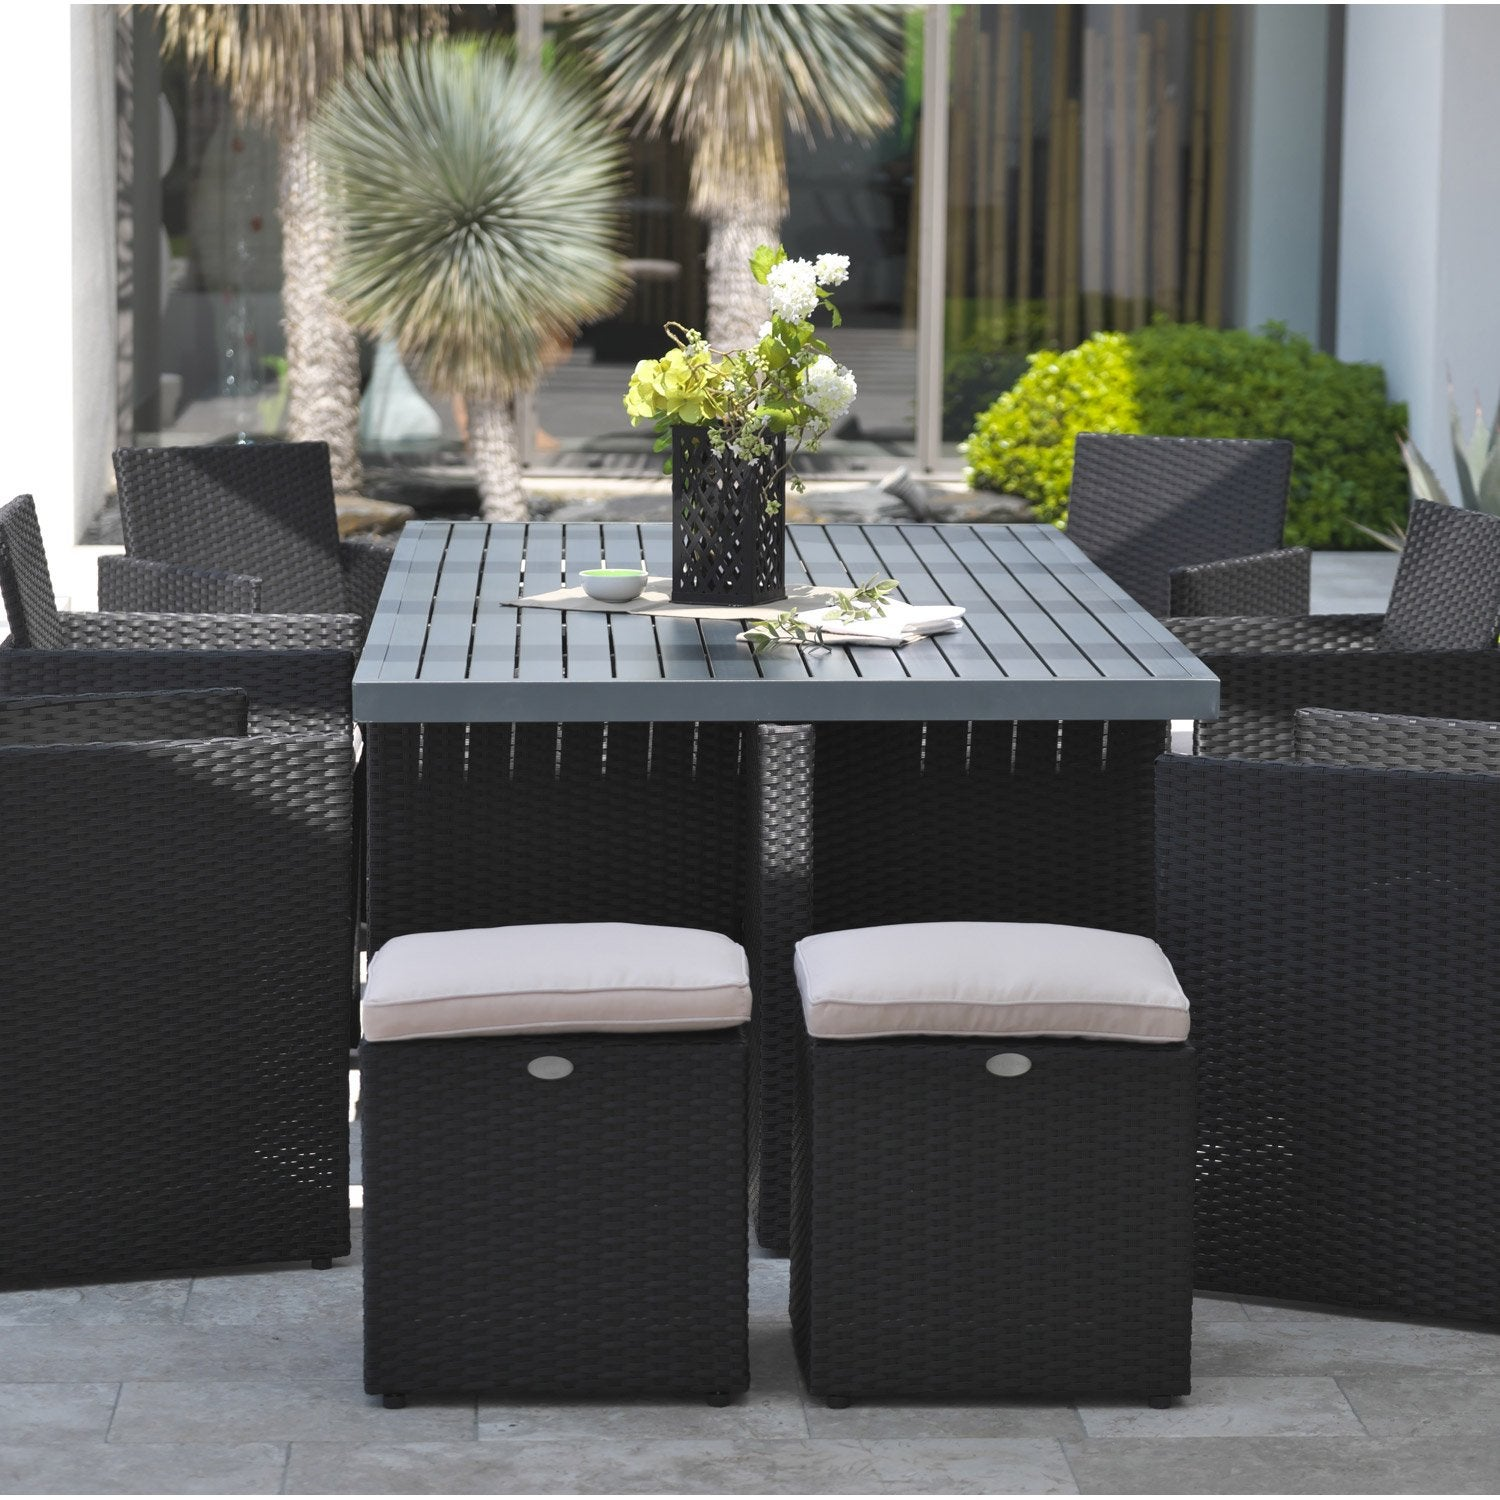 salon de jardin salon de jardin encastrable rsine tresse noir personnes with salon de jardin. Black Bedroom Furniture Sets. Home Design Ideas